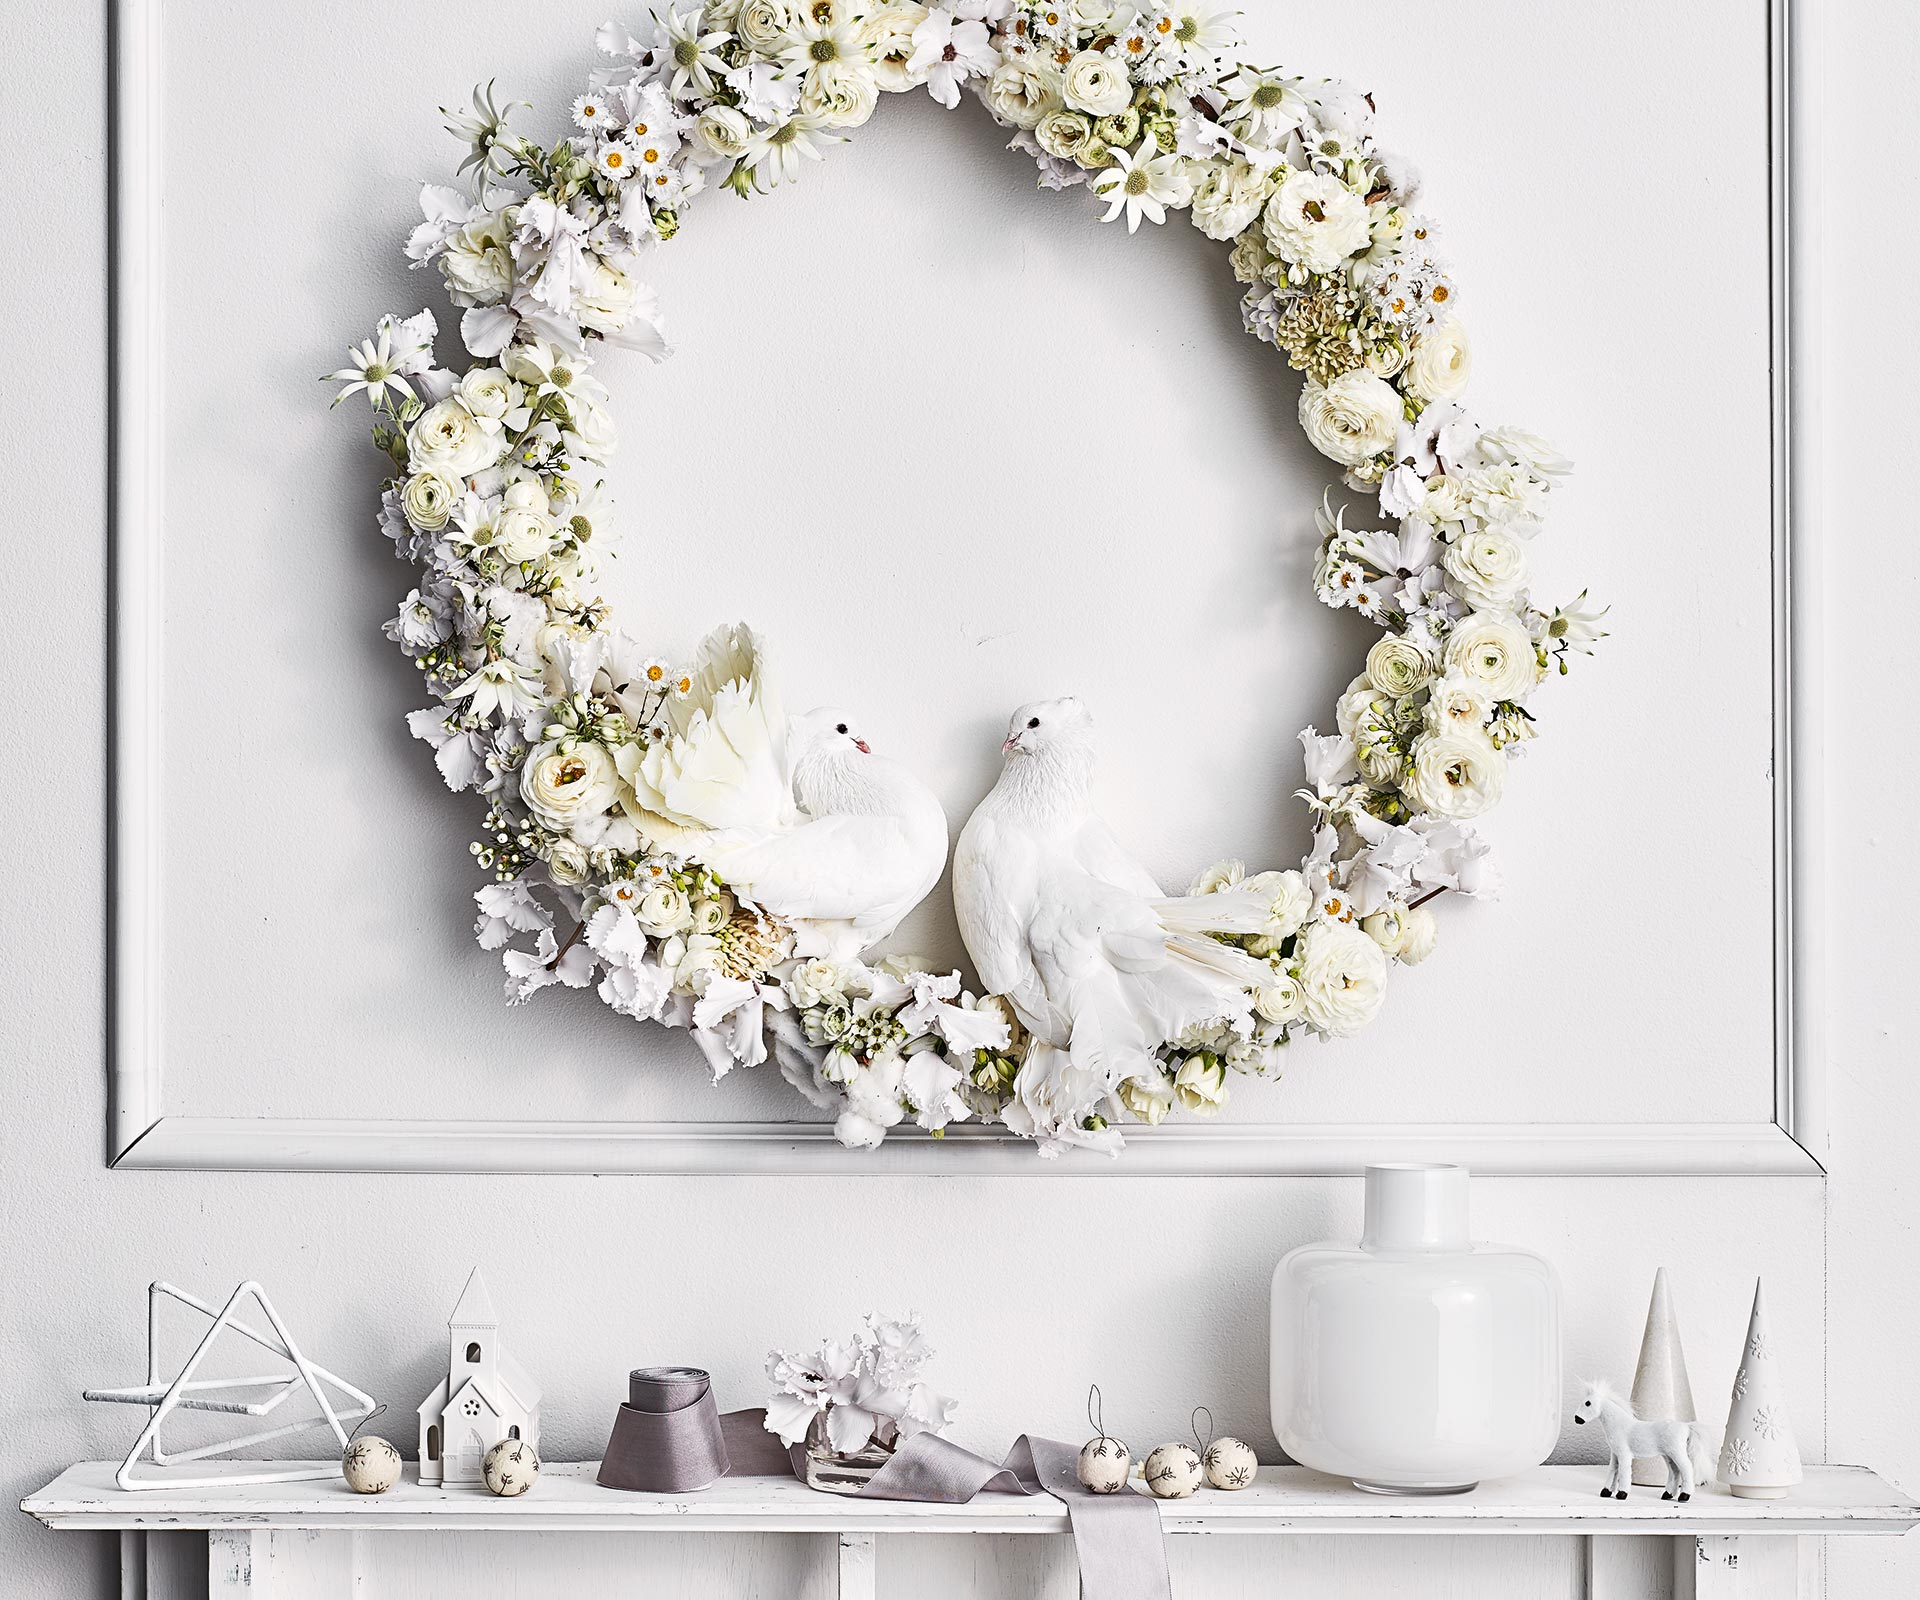 White Christmas decorations: 9 ideas for a white Christmas | Country Style